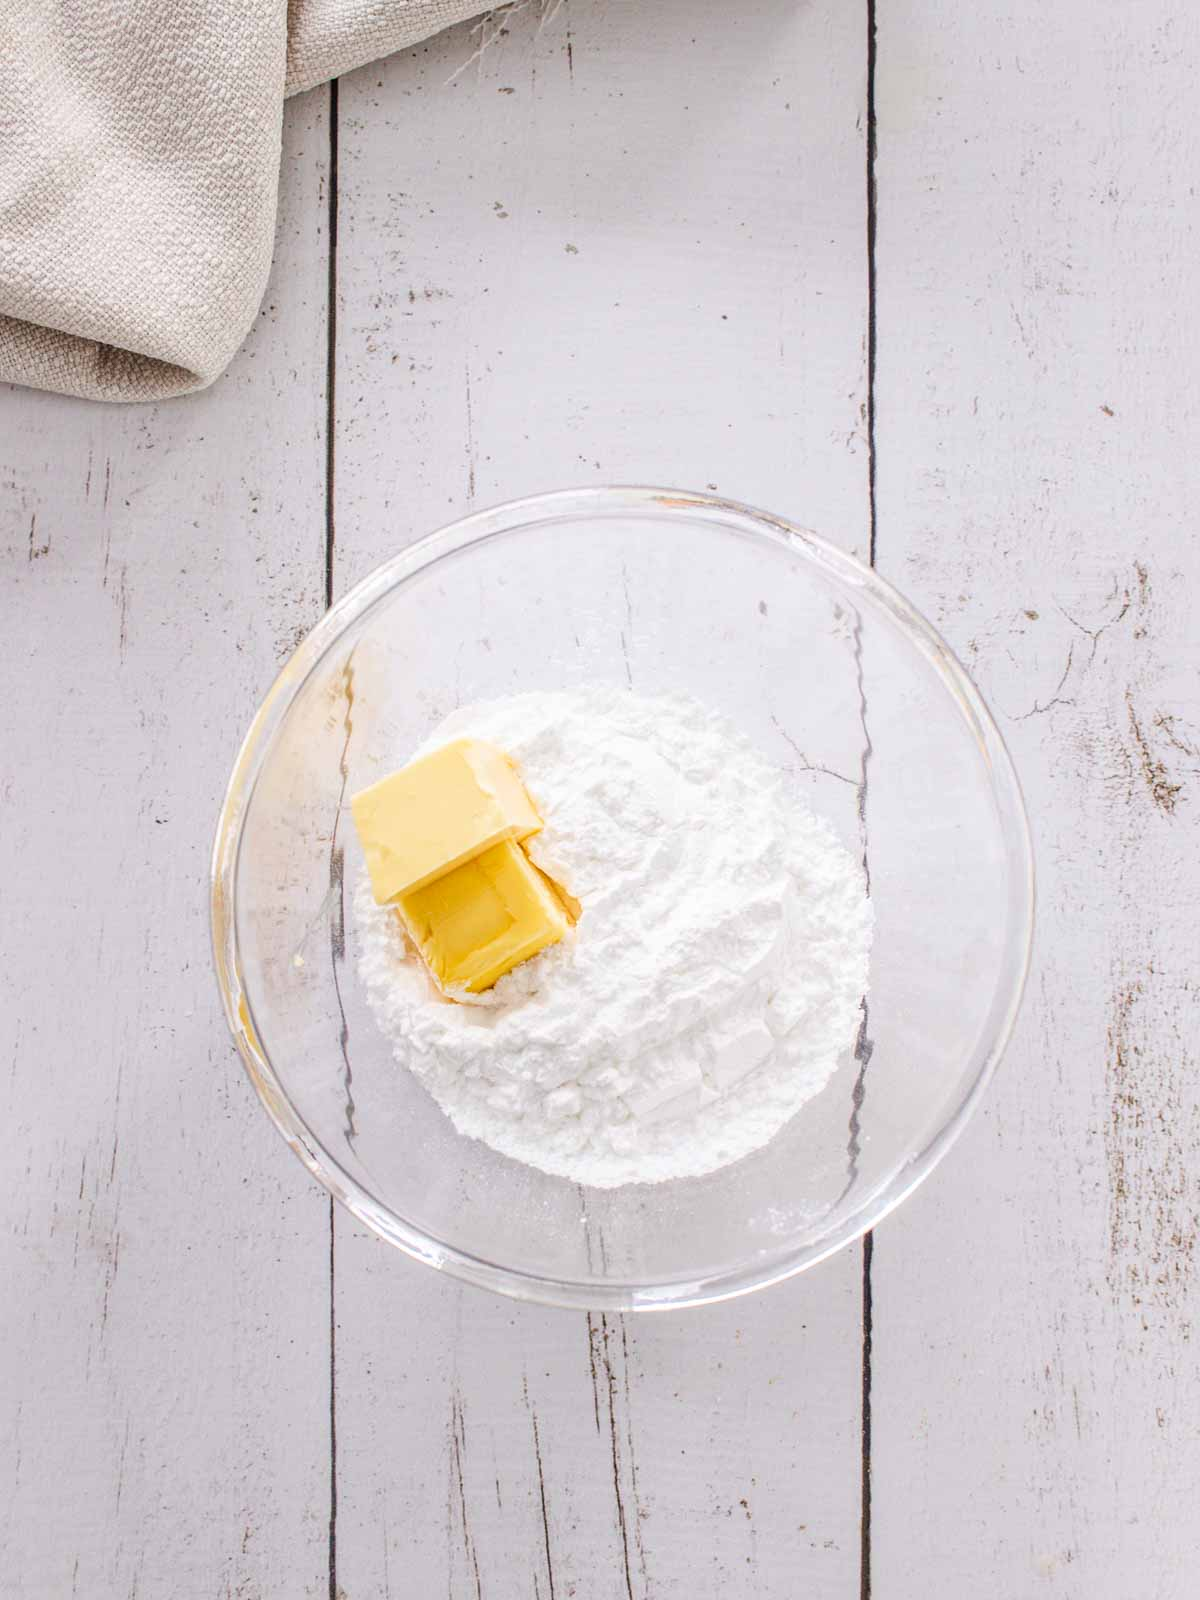 Icing sugar and butter in a bowl